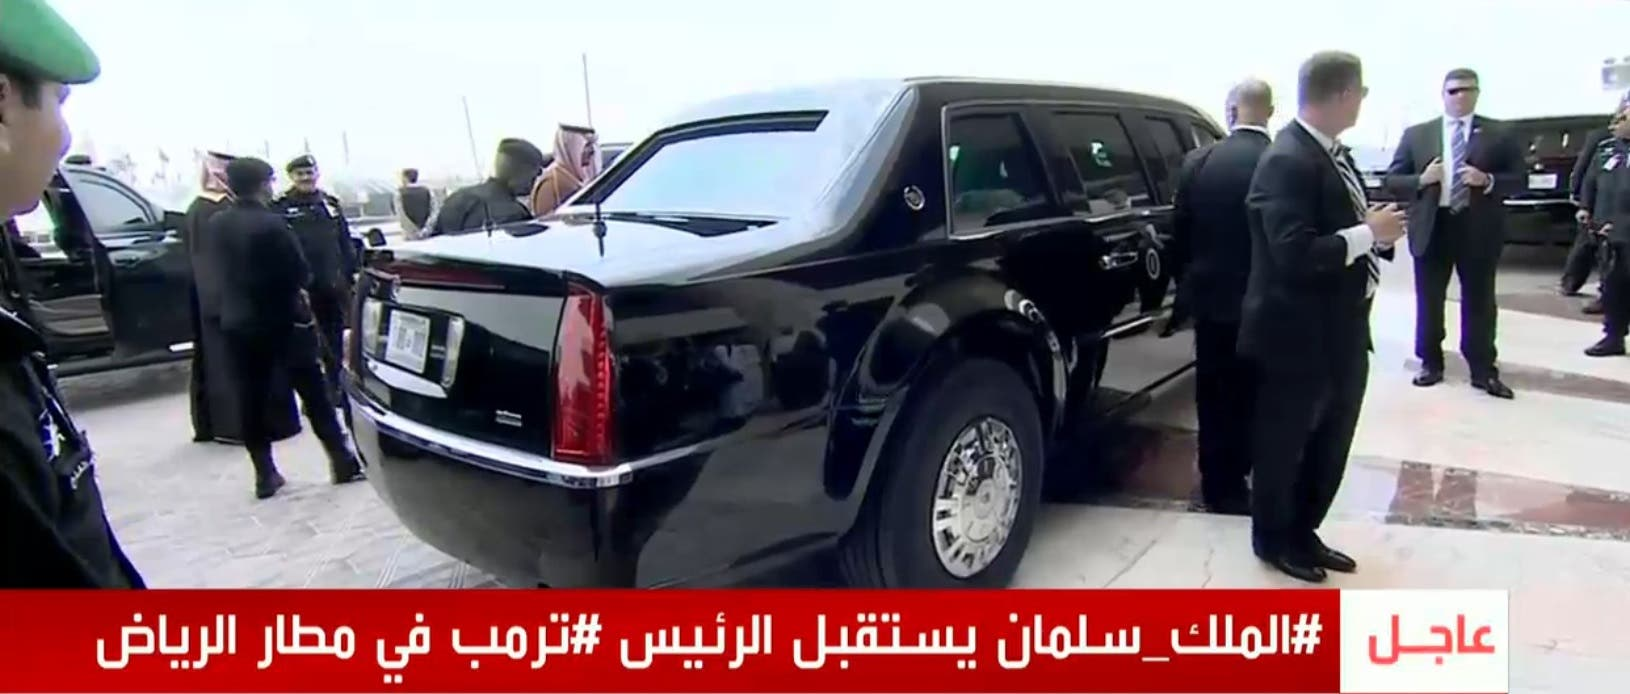 Donald Trump's arrival in Saudi Arabia